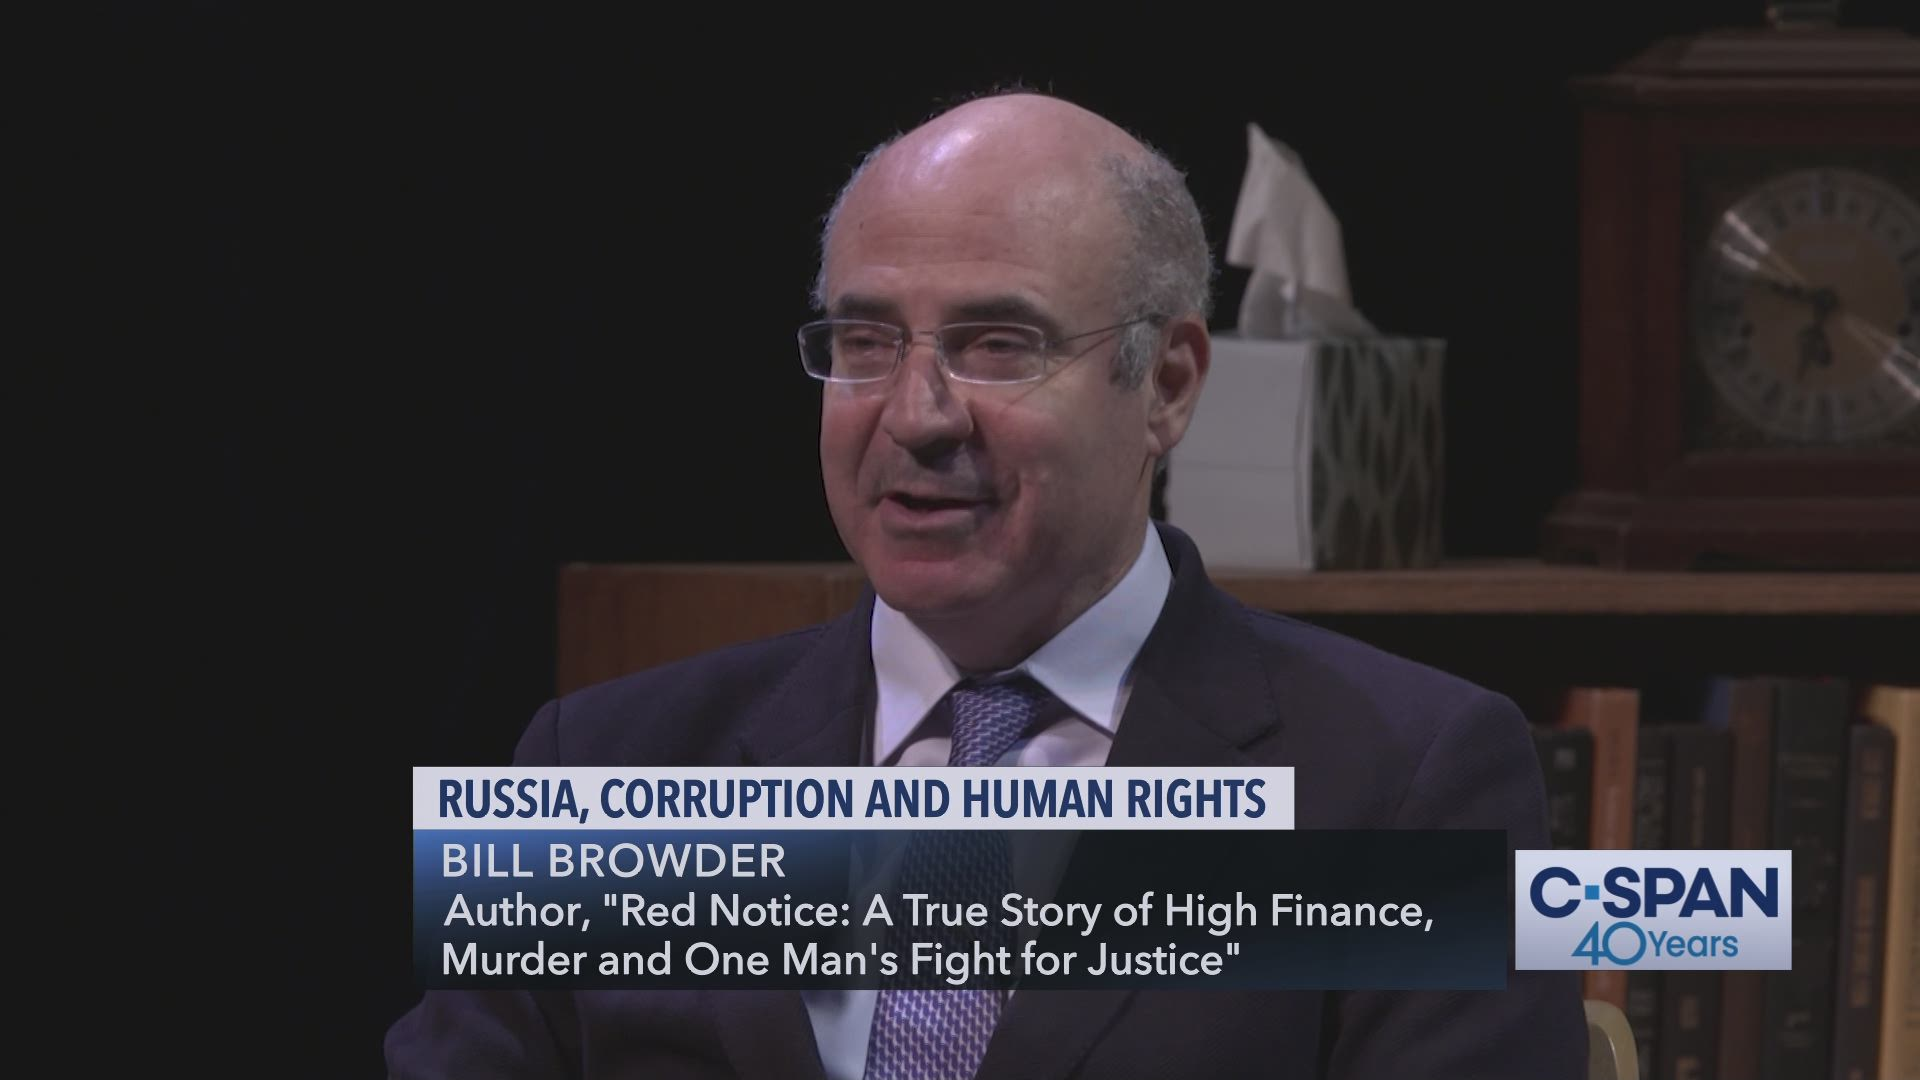 Bill Browder on Russia Corruption and Human Rights C SPANorg 1920x1080